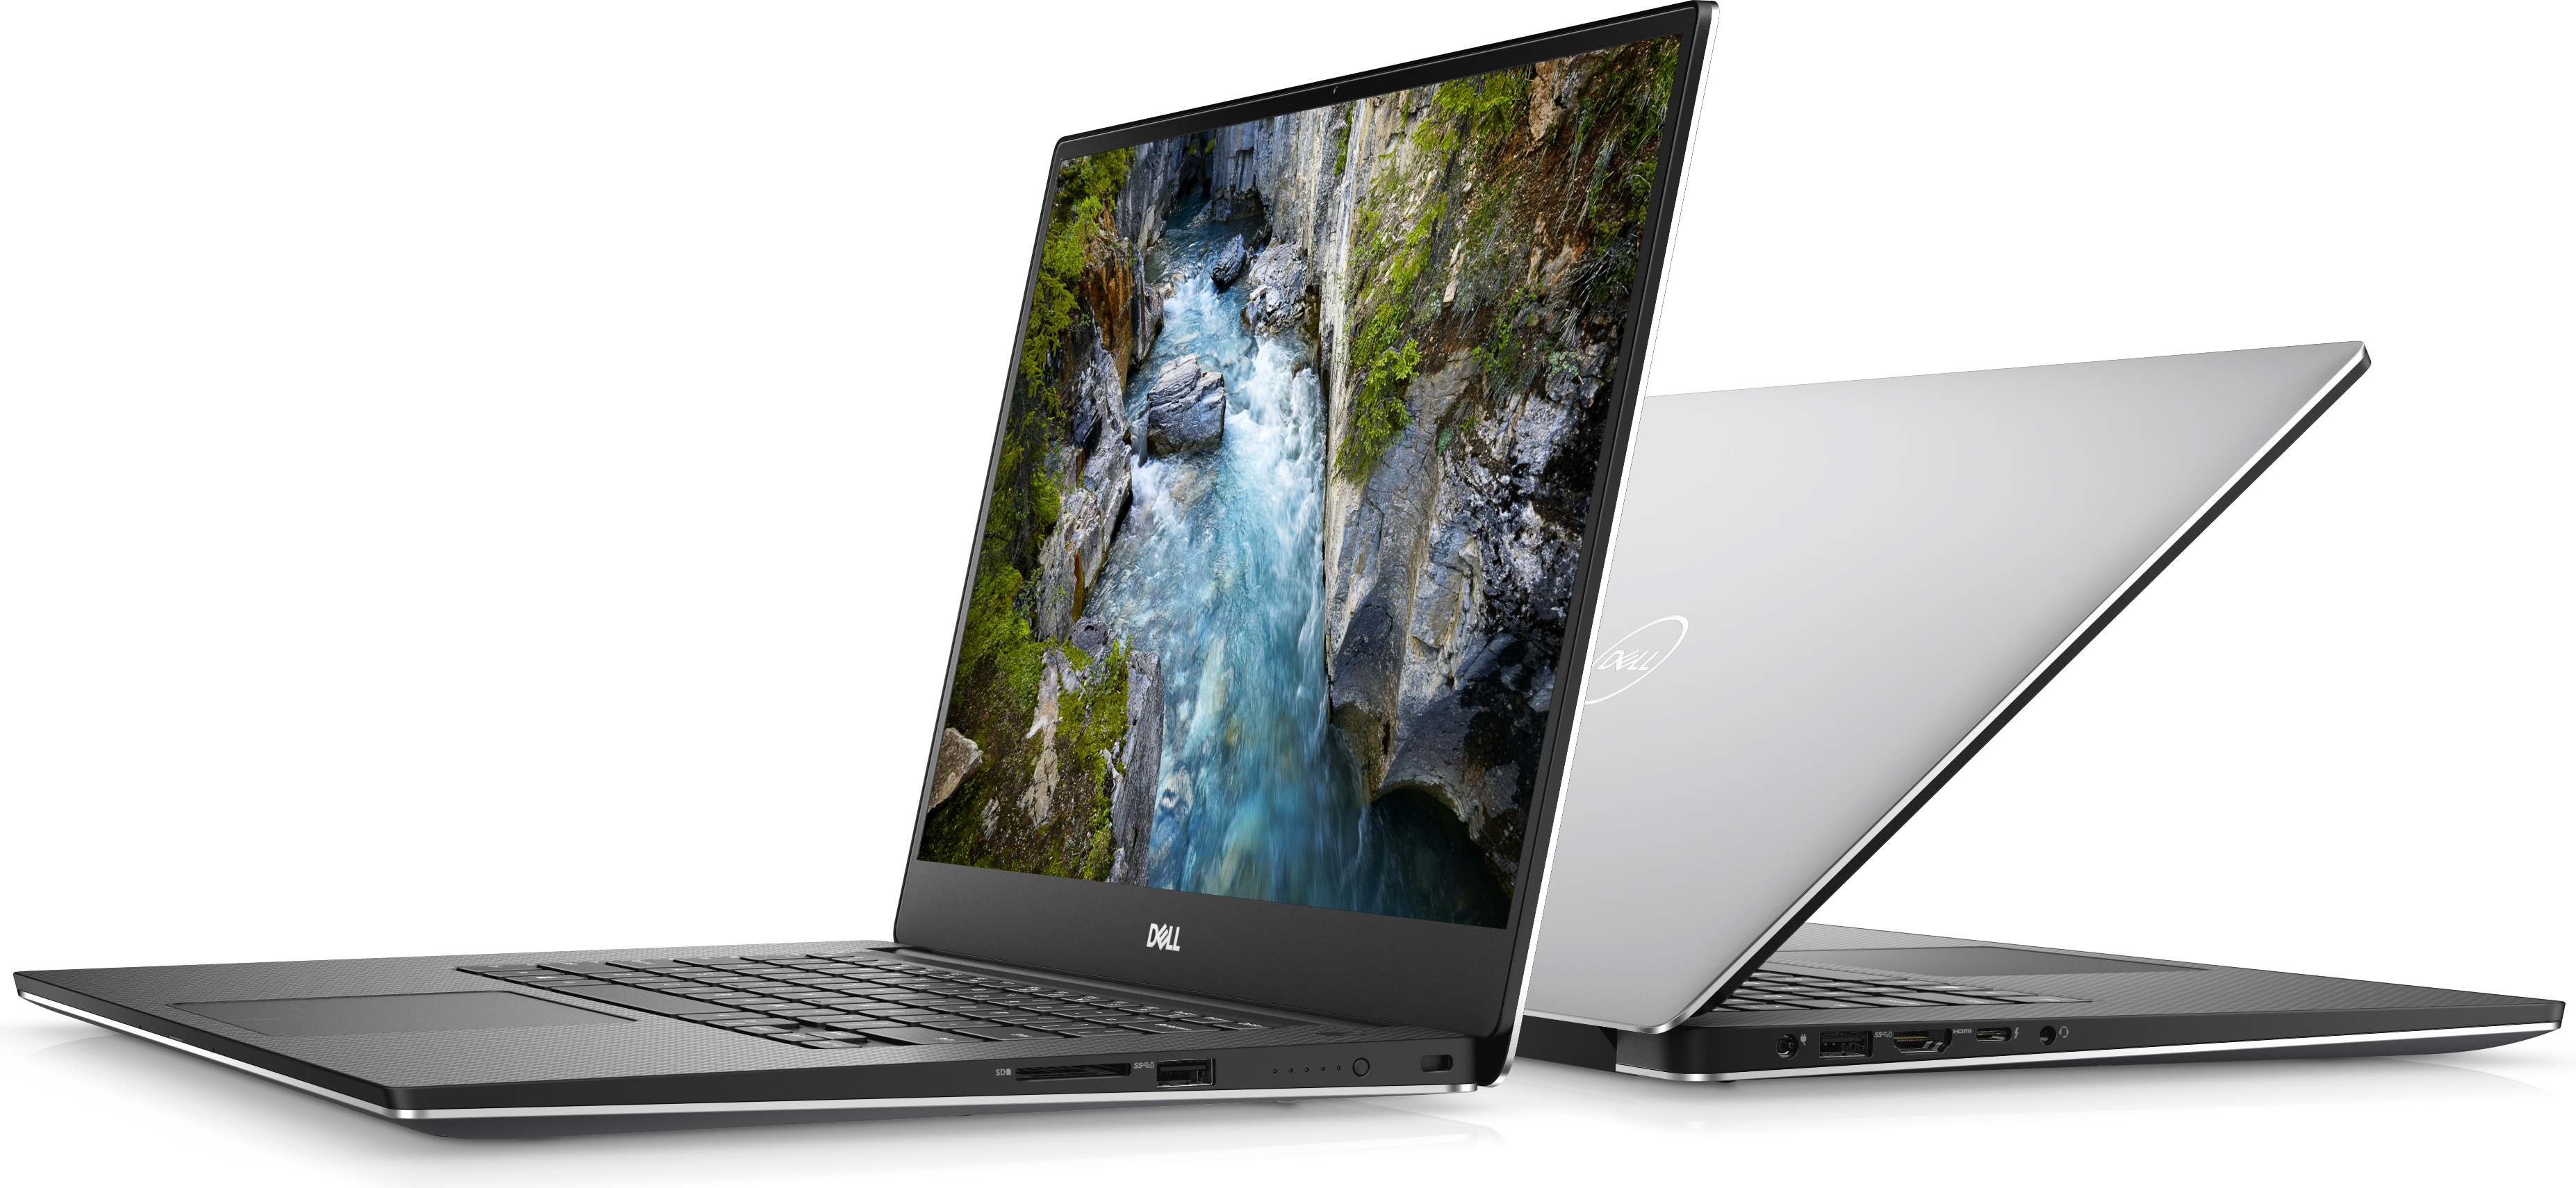 Dell Launches XPS 15 7590: Up to 5 GHz and Overclockable, 15 6-Inch OLED